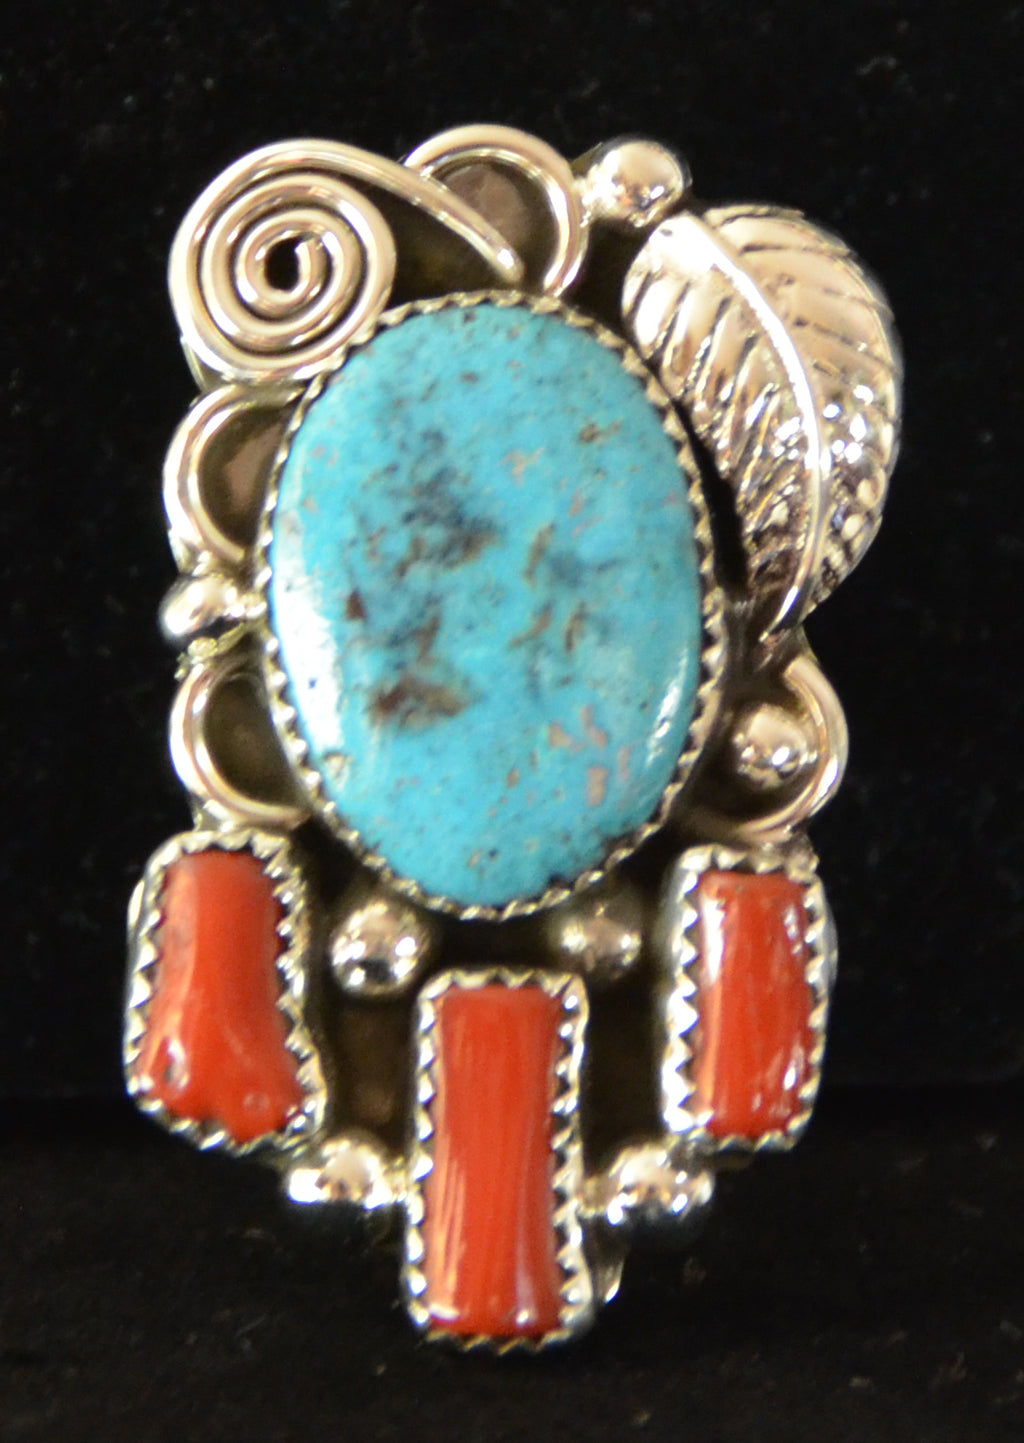 Native American Jewelry : Navajo : Ring : Turquoise : Kenneth Largo : NAJ- 4R - Getzwiller's Nizhoni Ranch Gallery